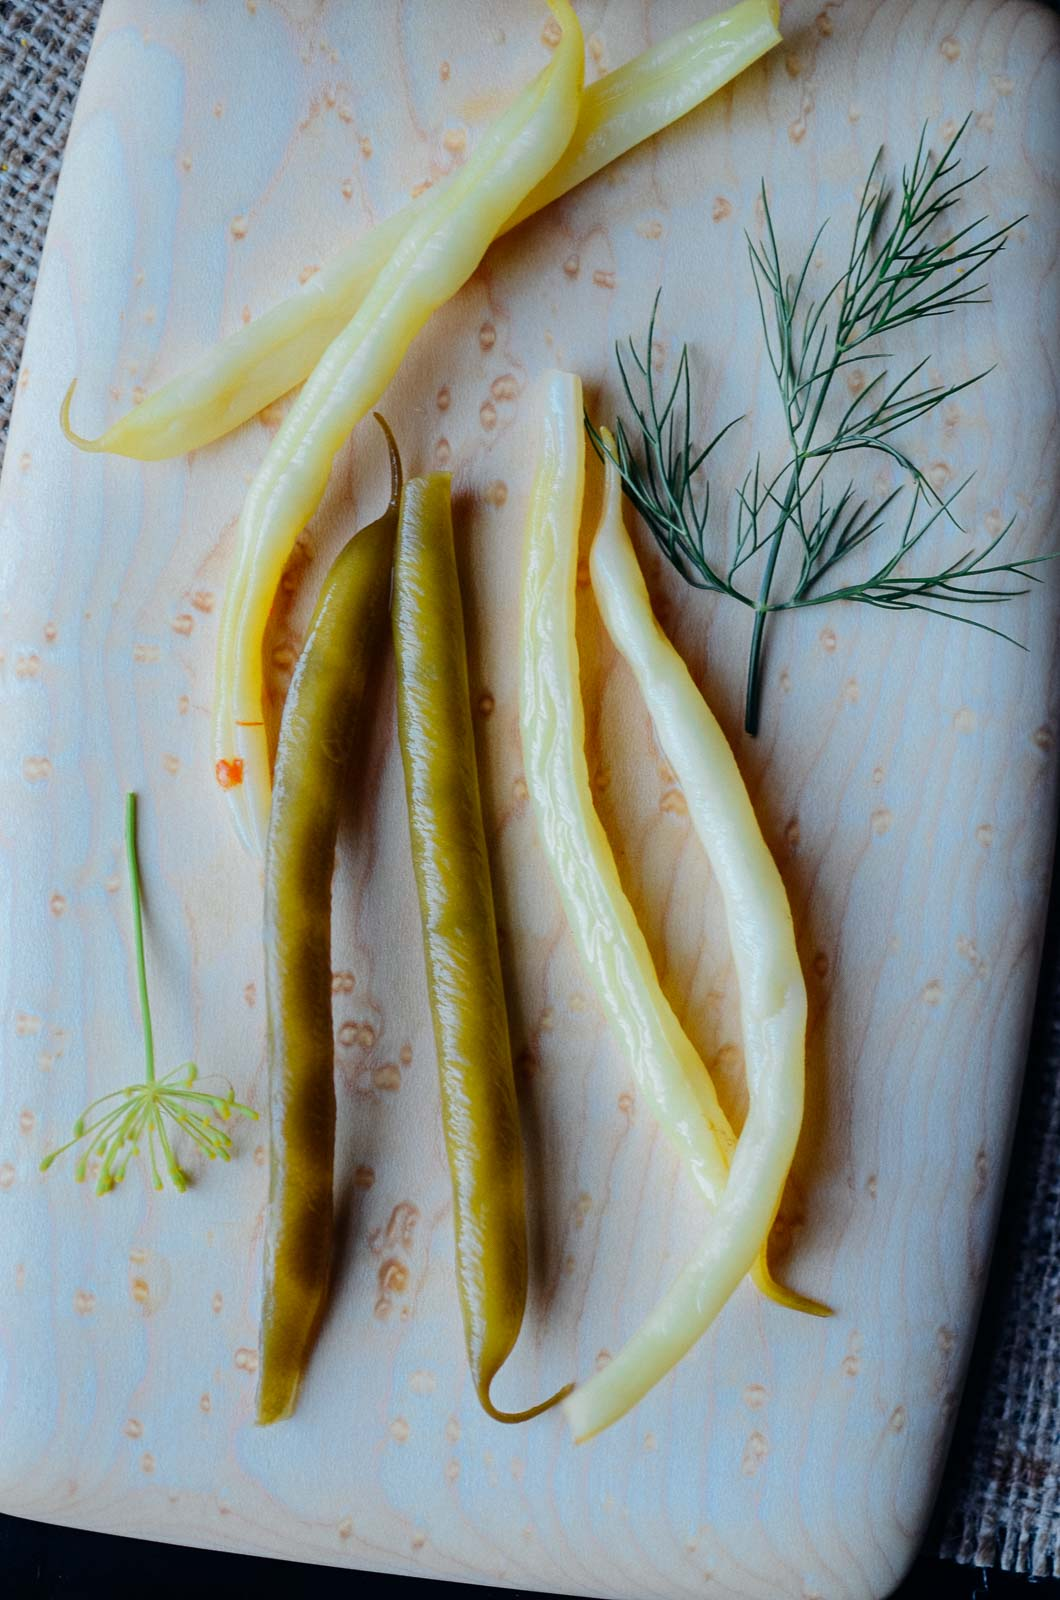 Pickled and preserved spicy green beans | Scaling Back